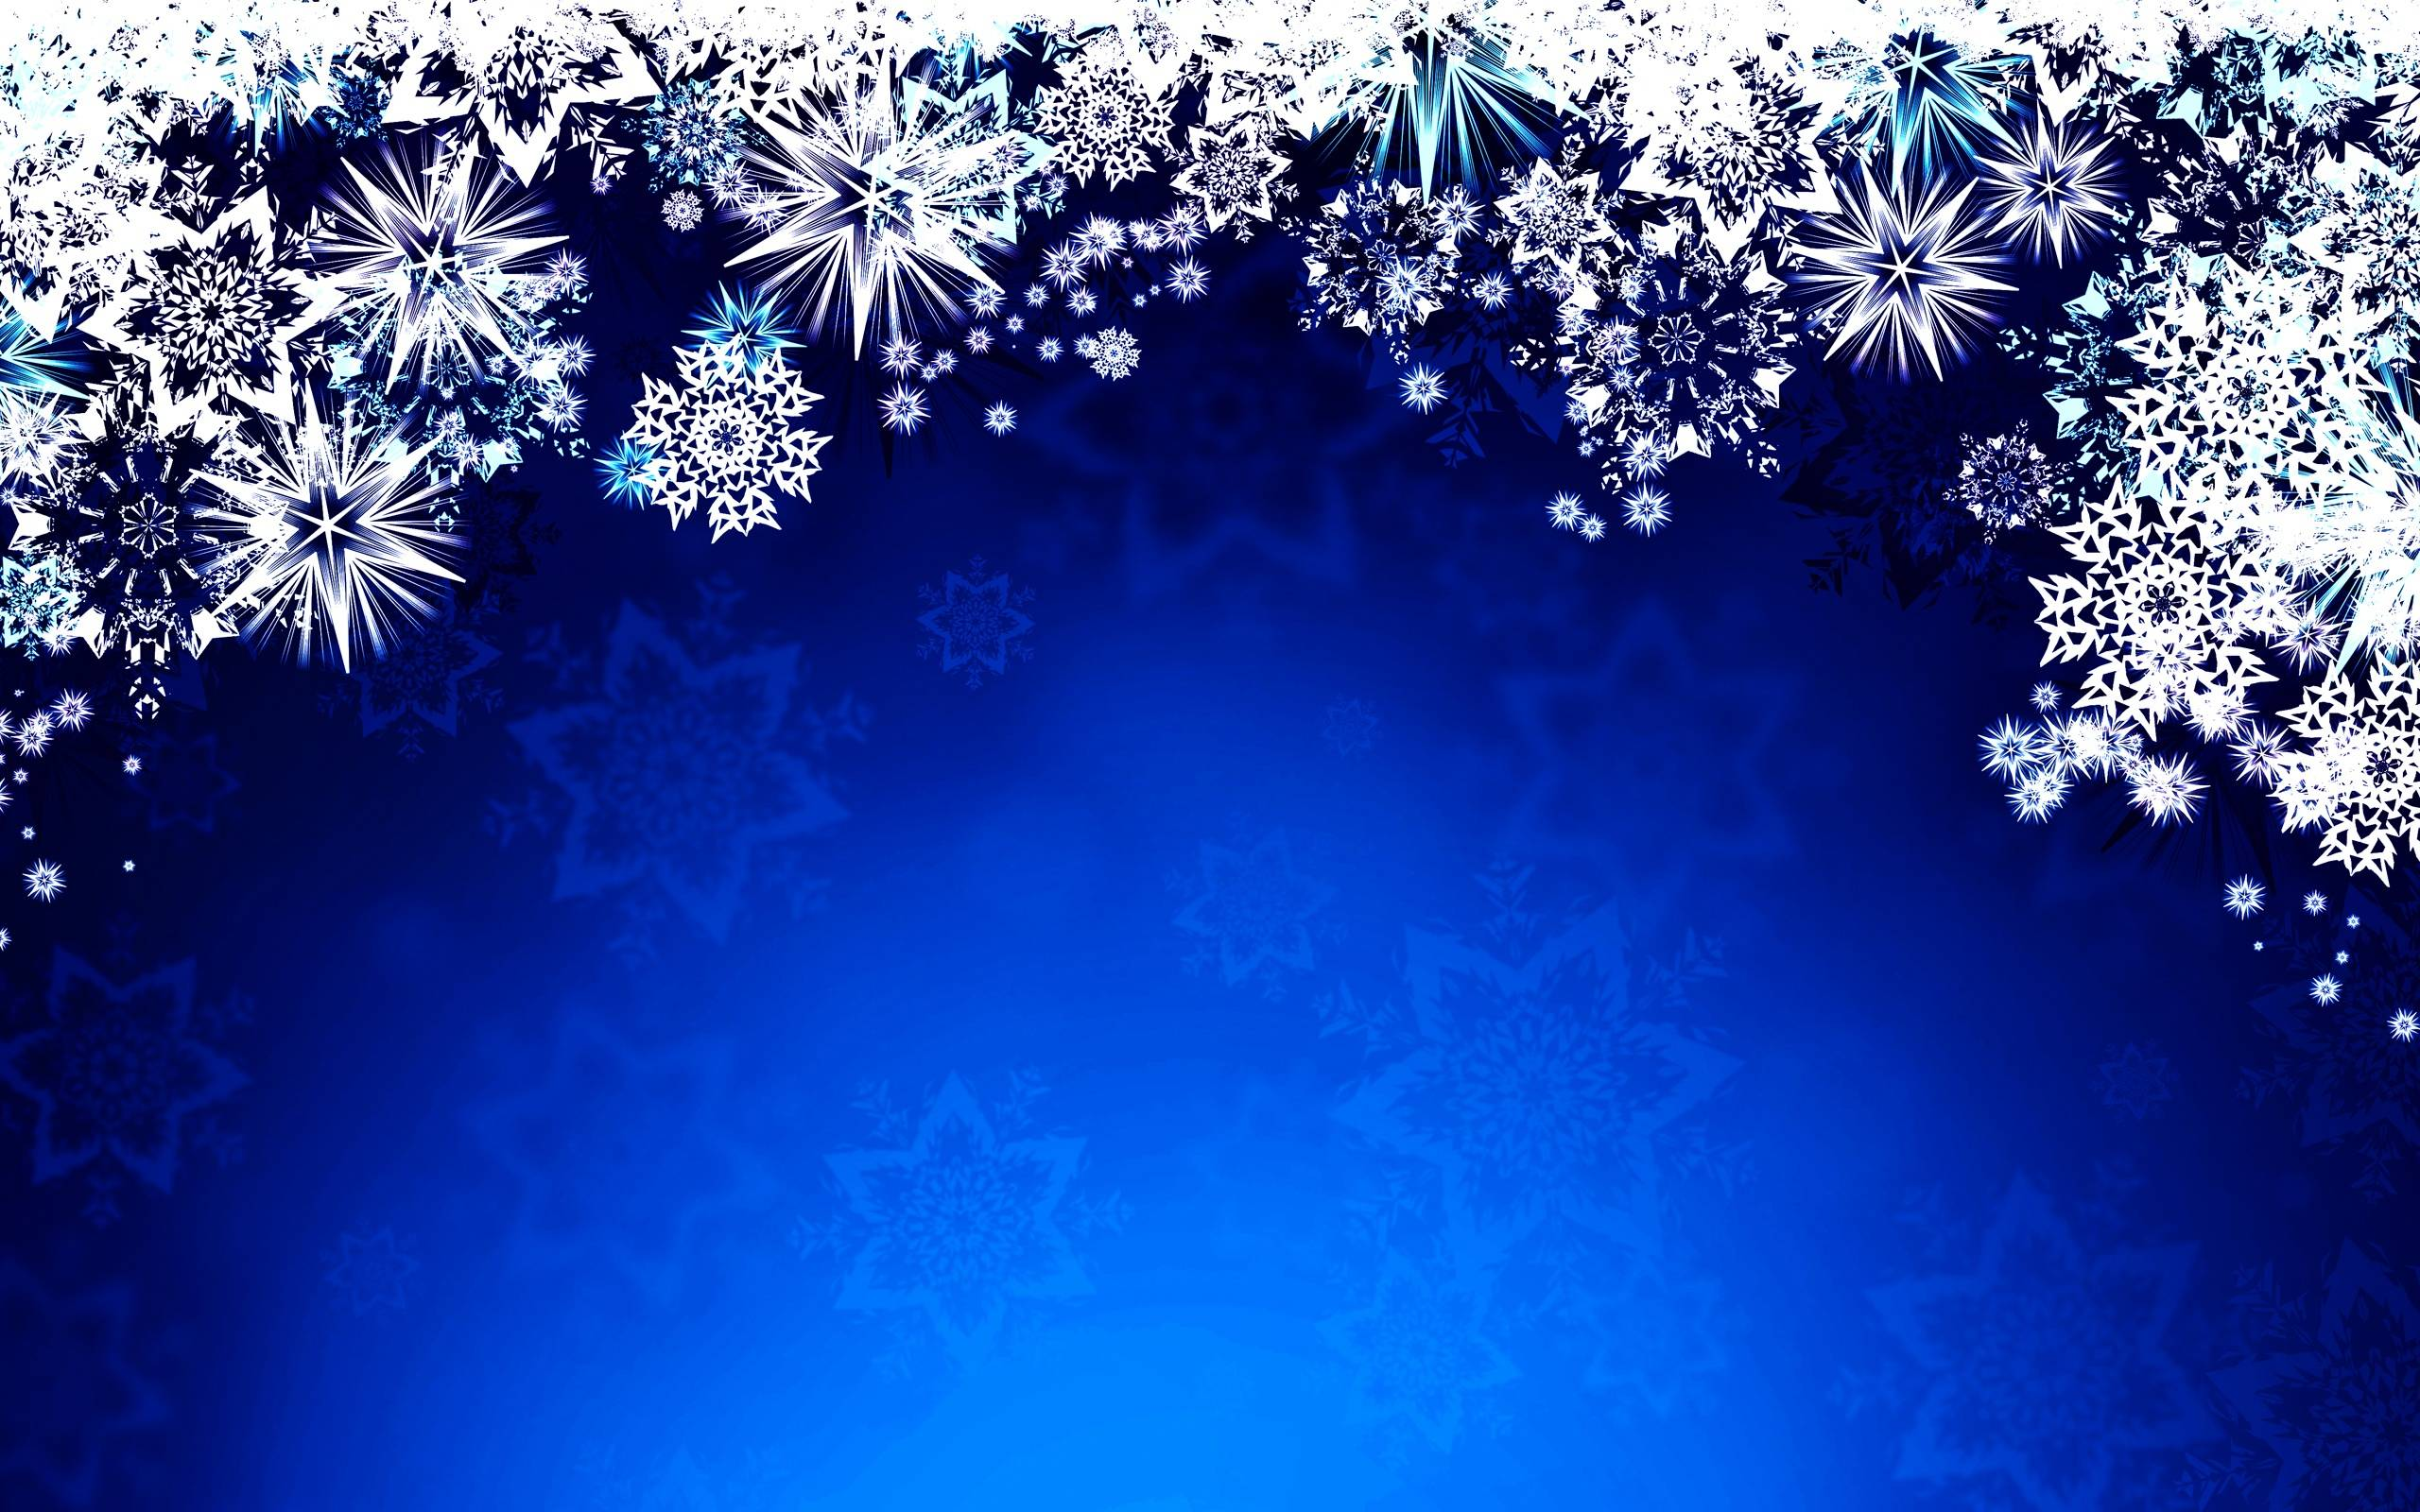 real snowflakes background - photo #20